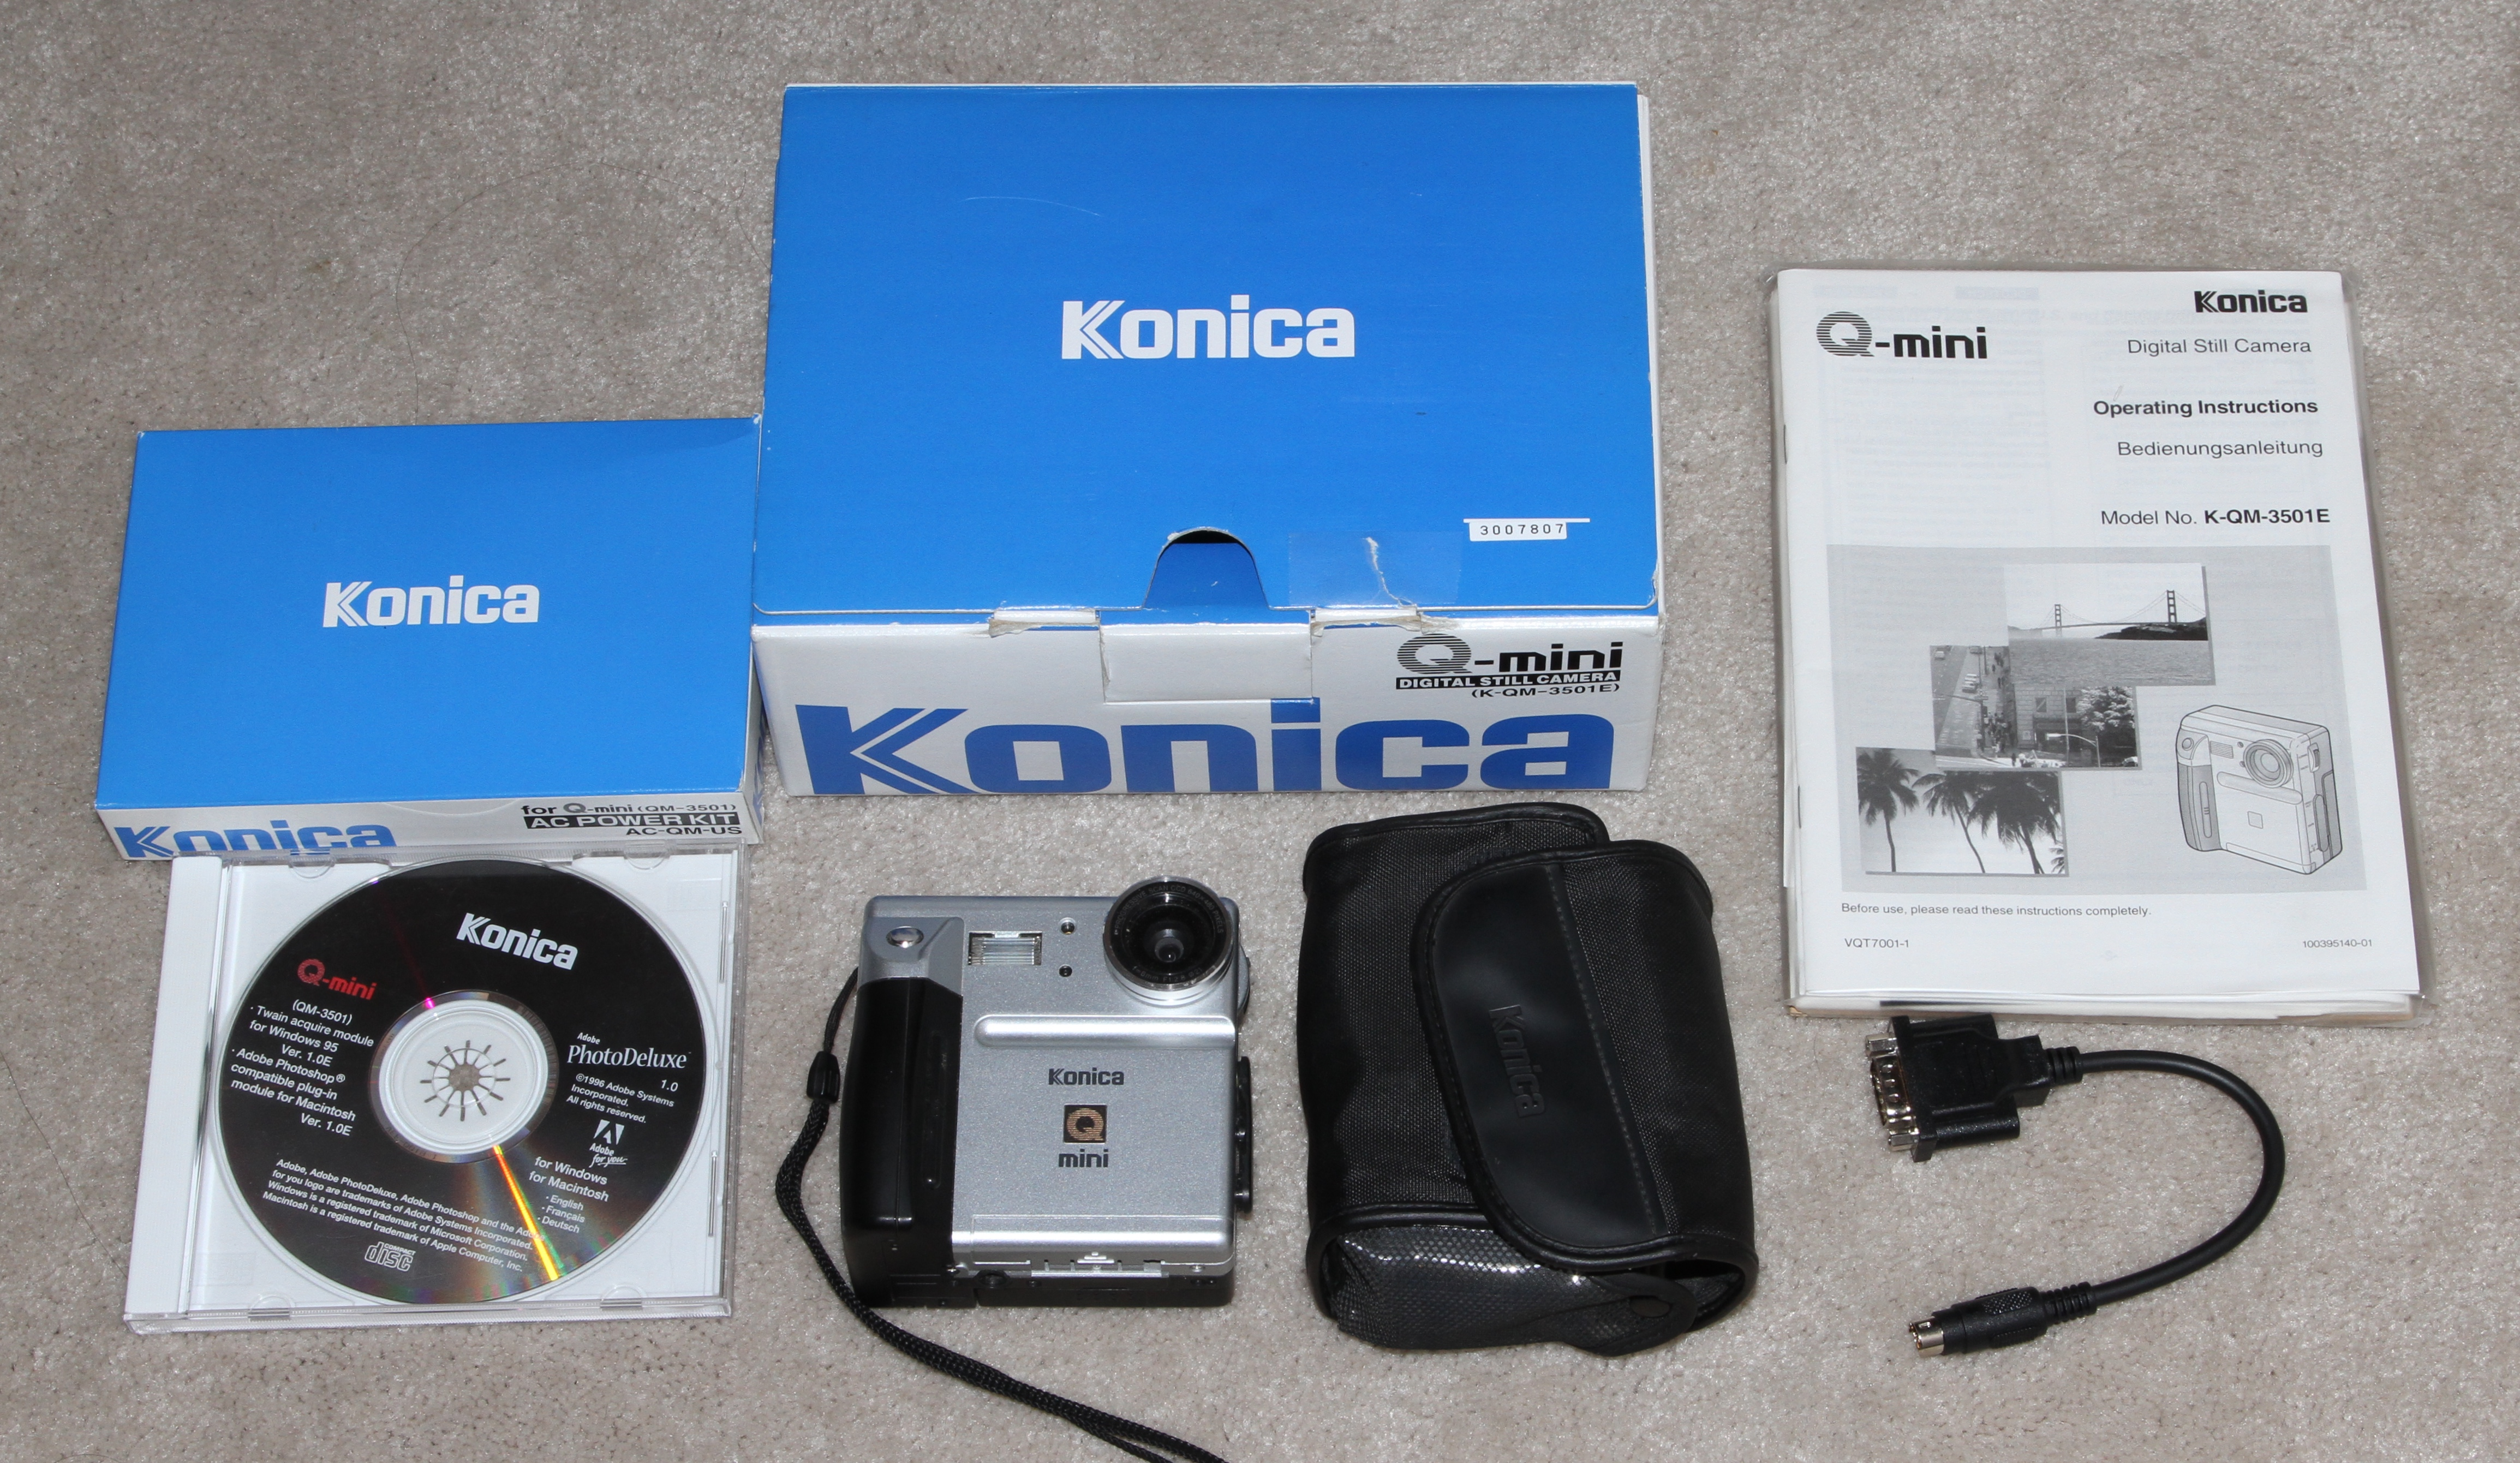 konica q-mini, panasonic cardshot nv-dcf-1 digital camera 1997